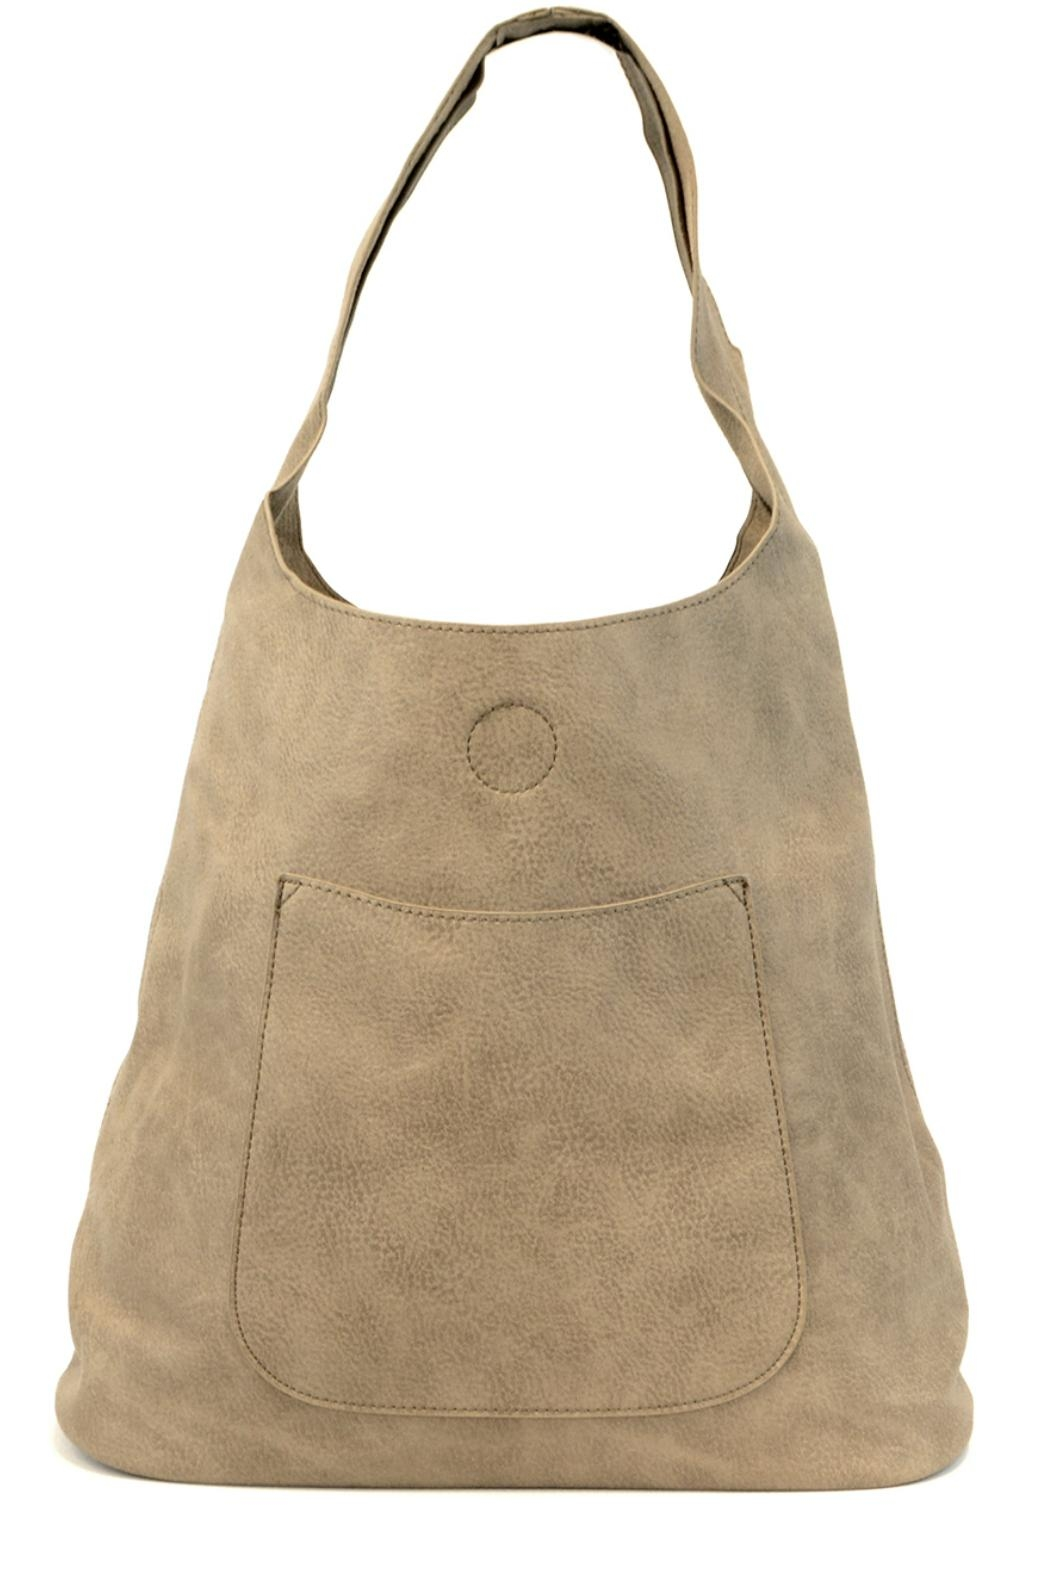 Joy Accessories Slouchy Hobo Bag - Main Image